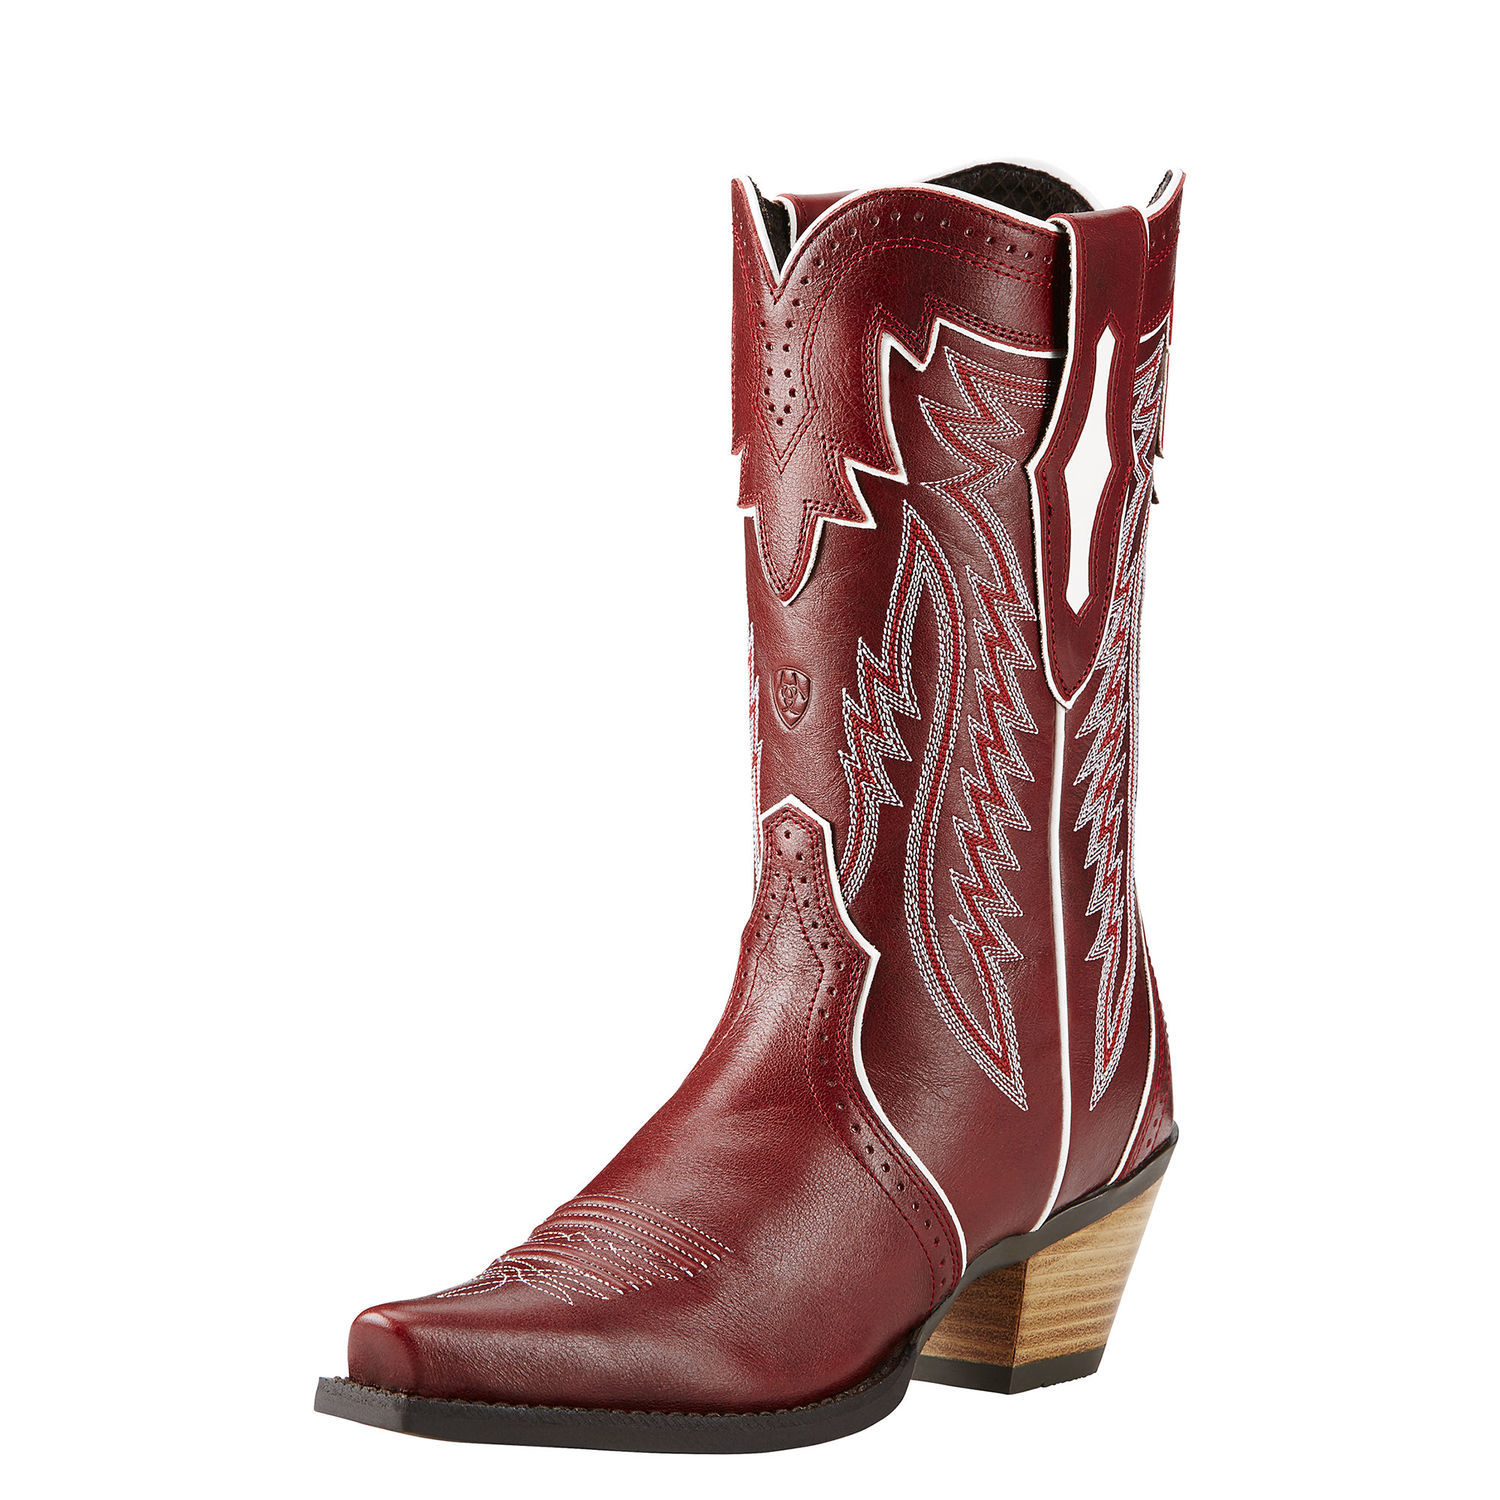 Ariat Calamity Square Toe Leather Western Boot by